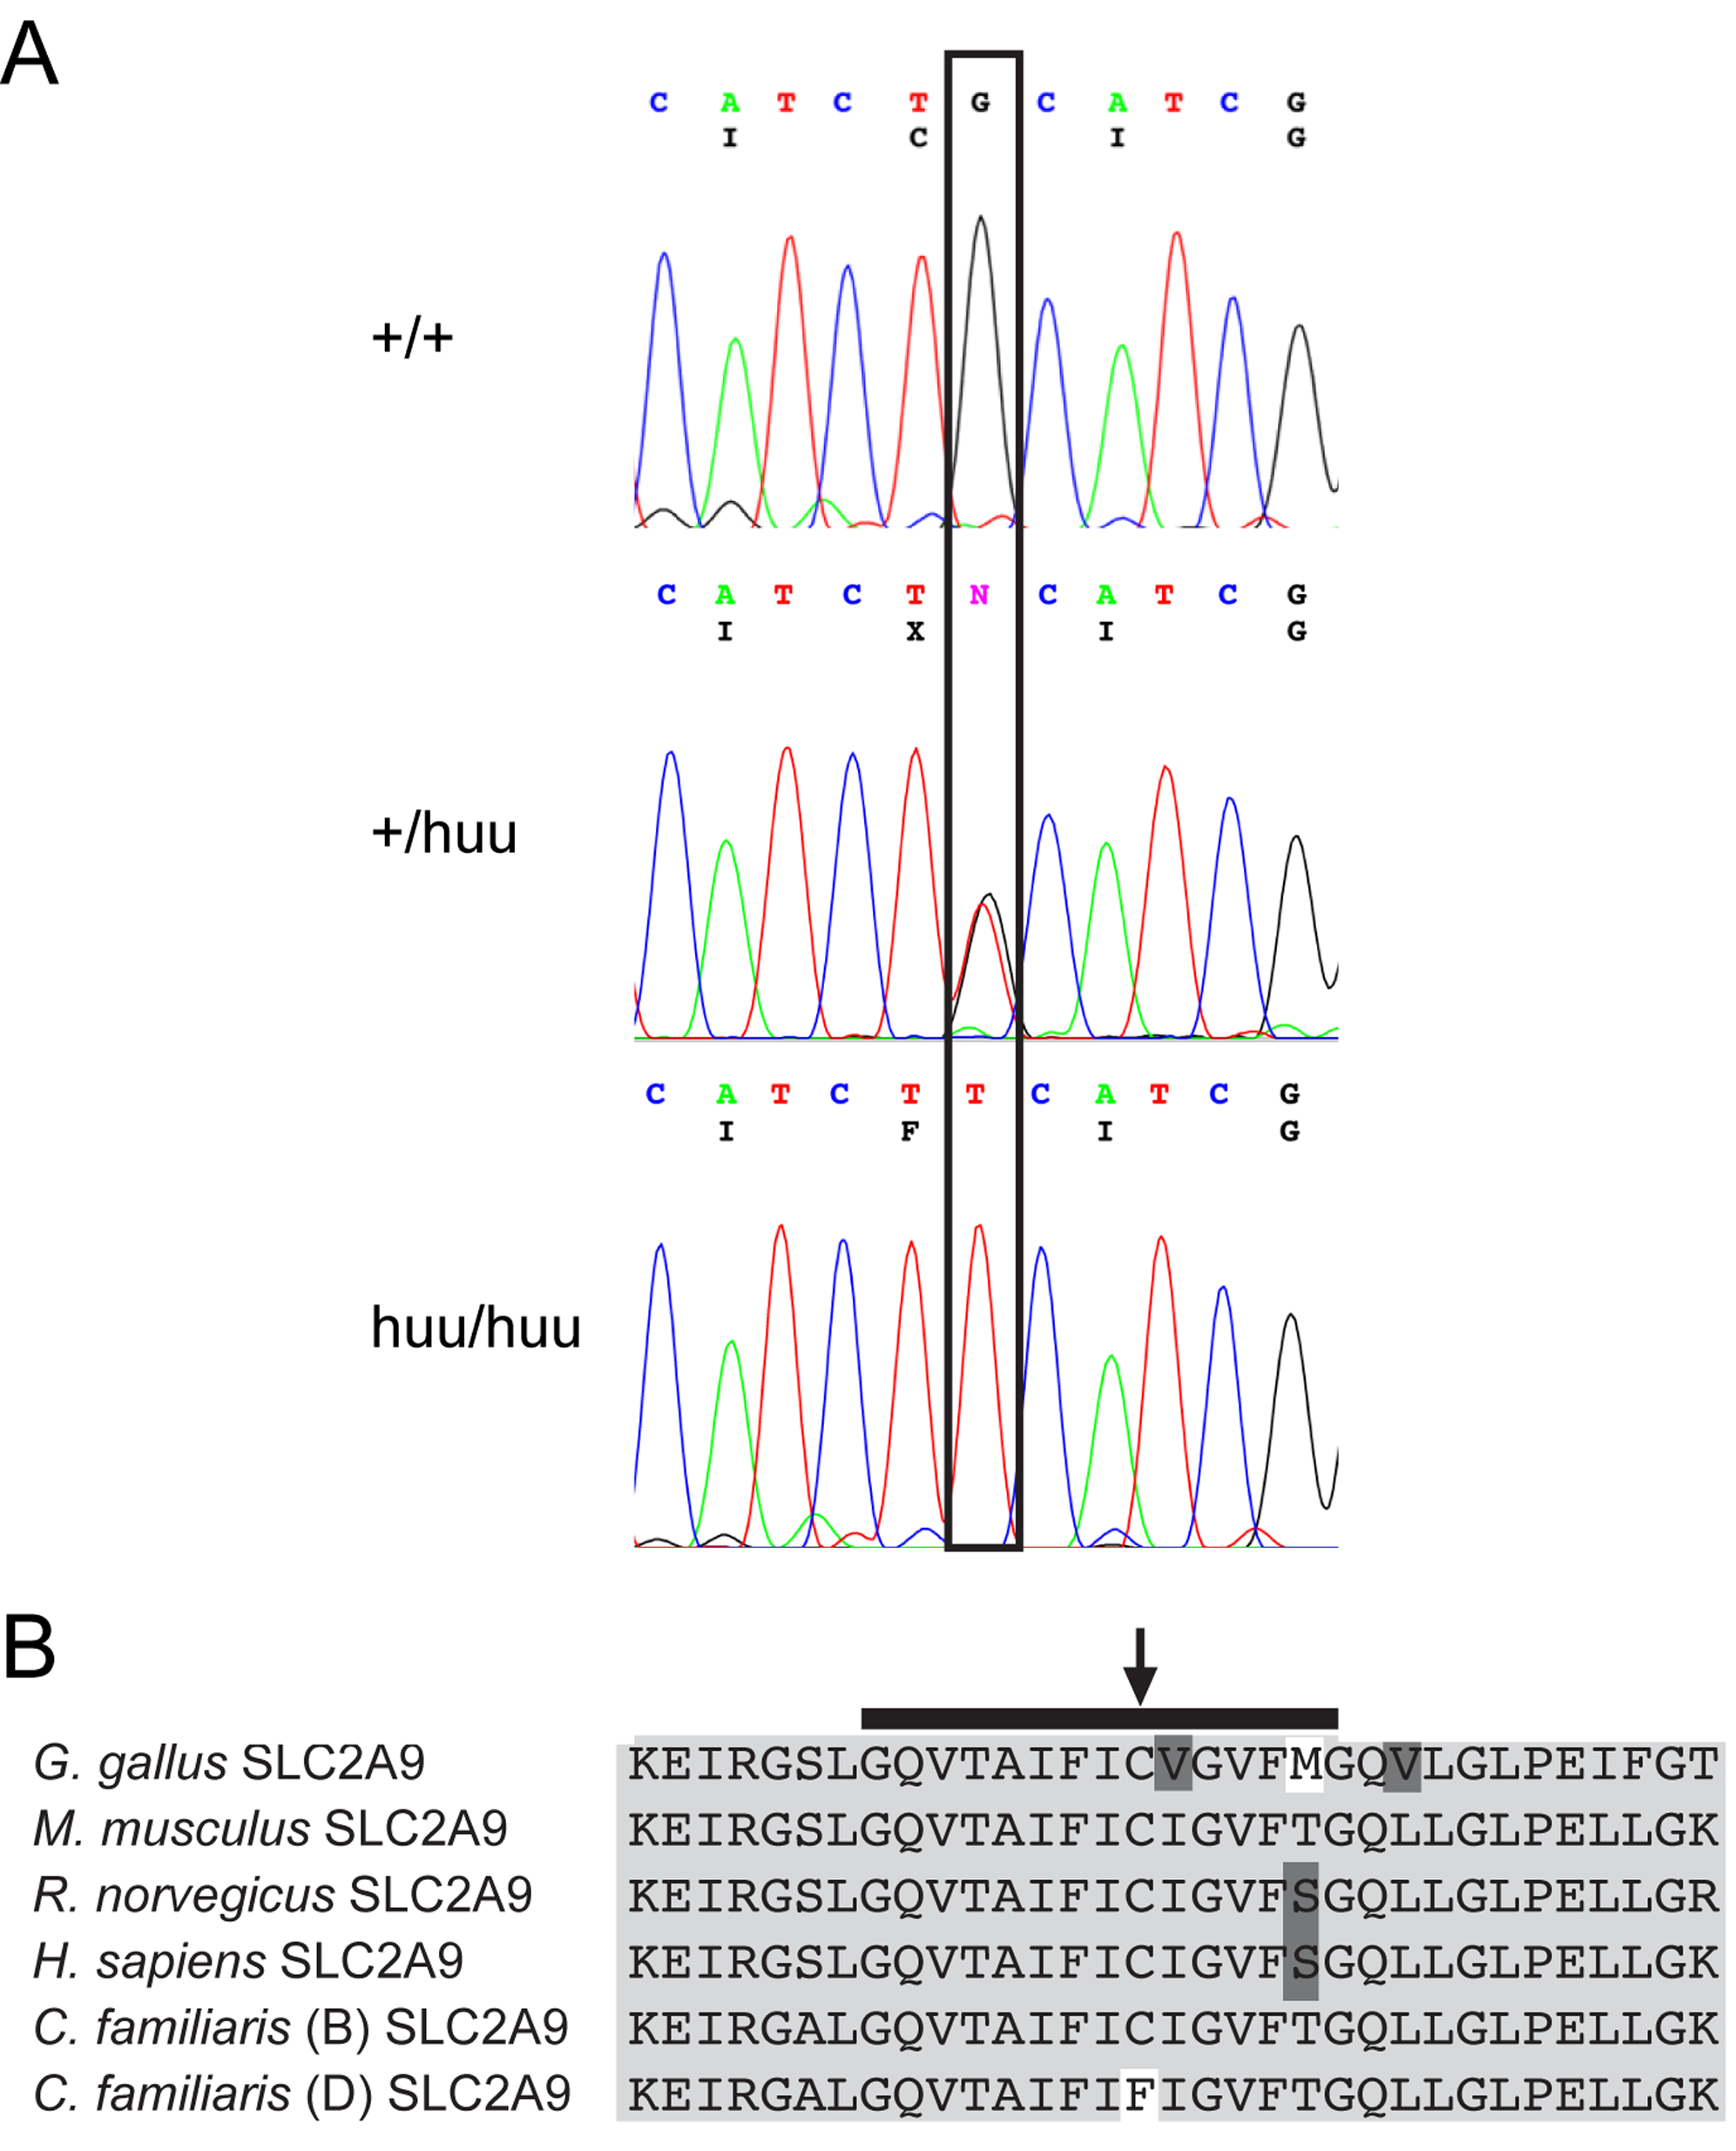 Sequence and expression of canine SLC2A9.